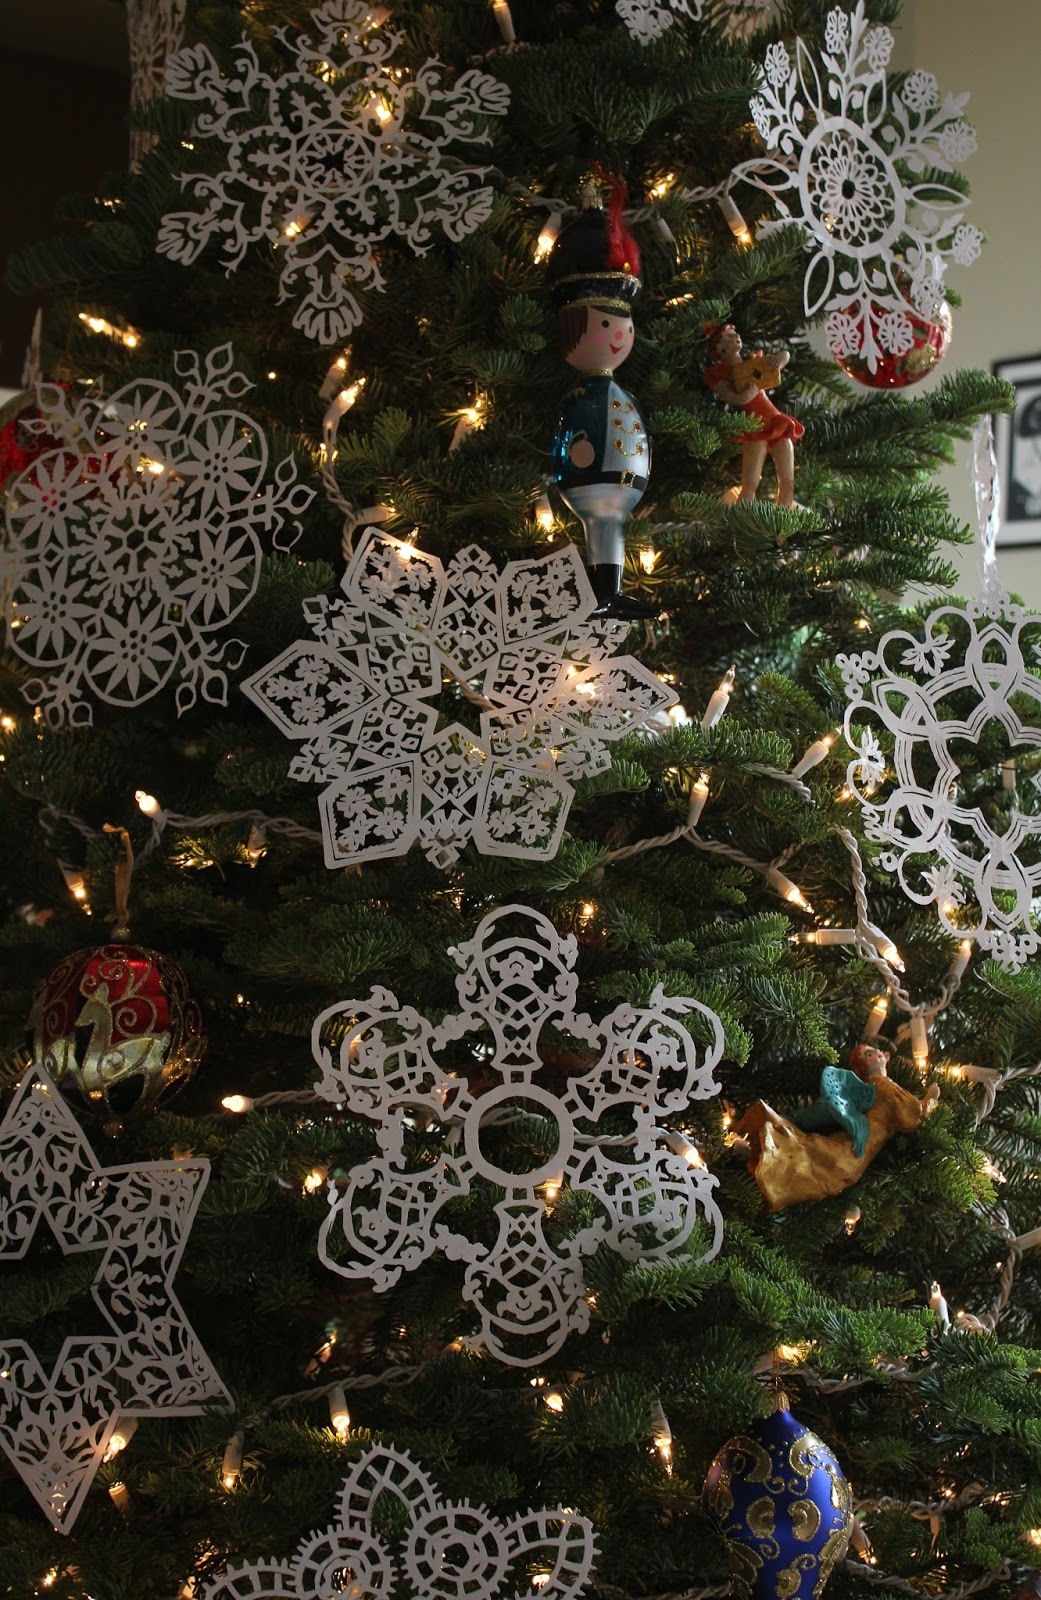 Christmas Decorations Myer : The other oeuvre world of christmas photography and